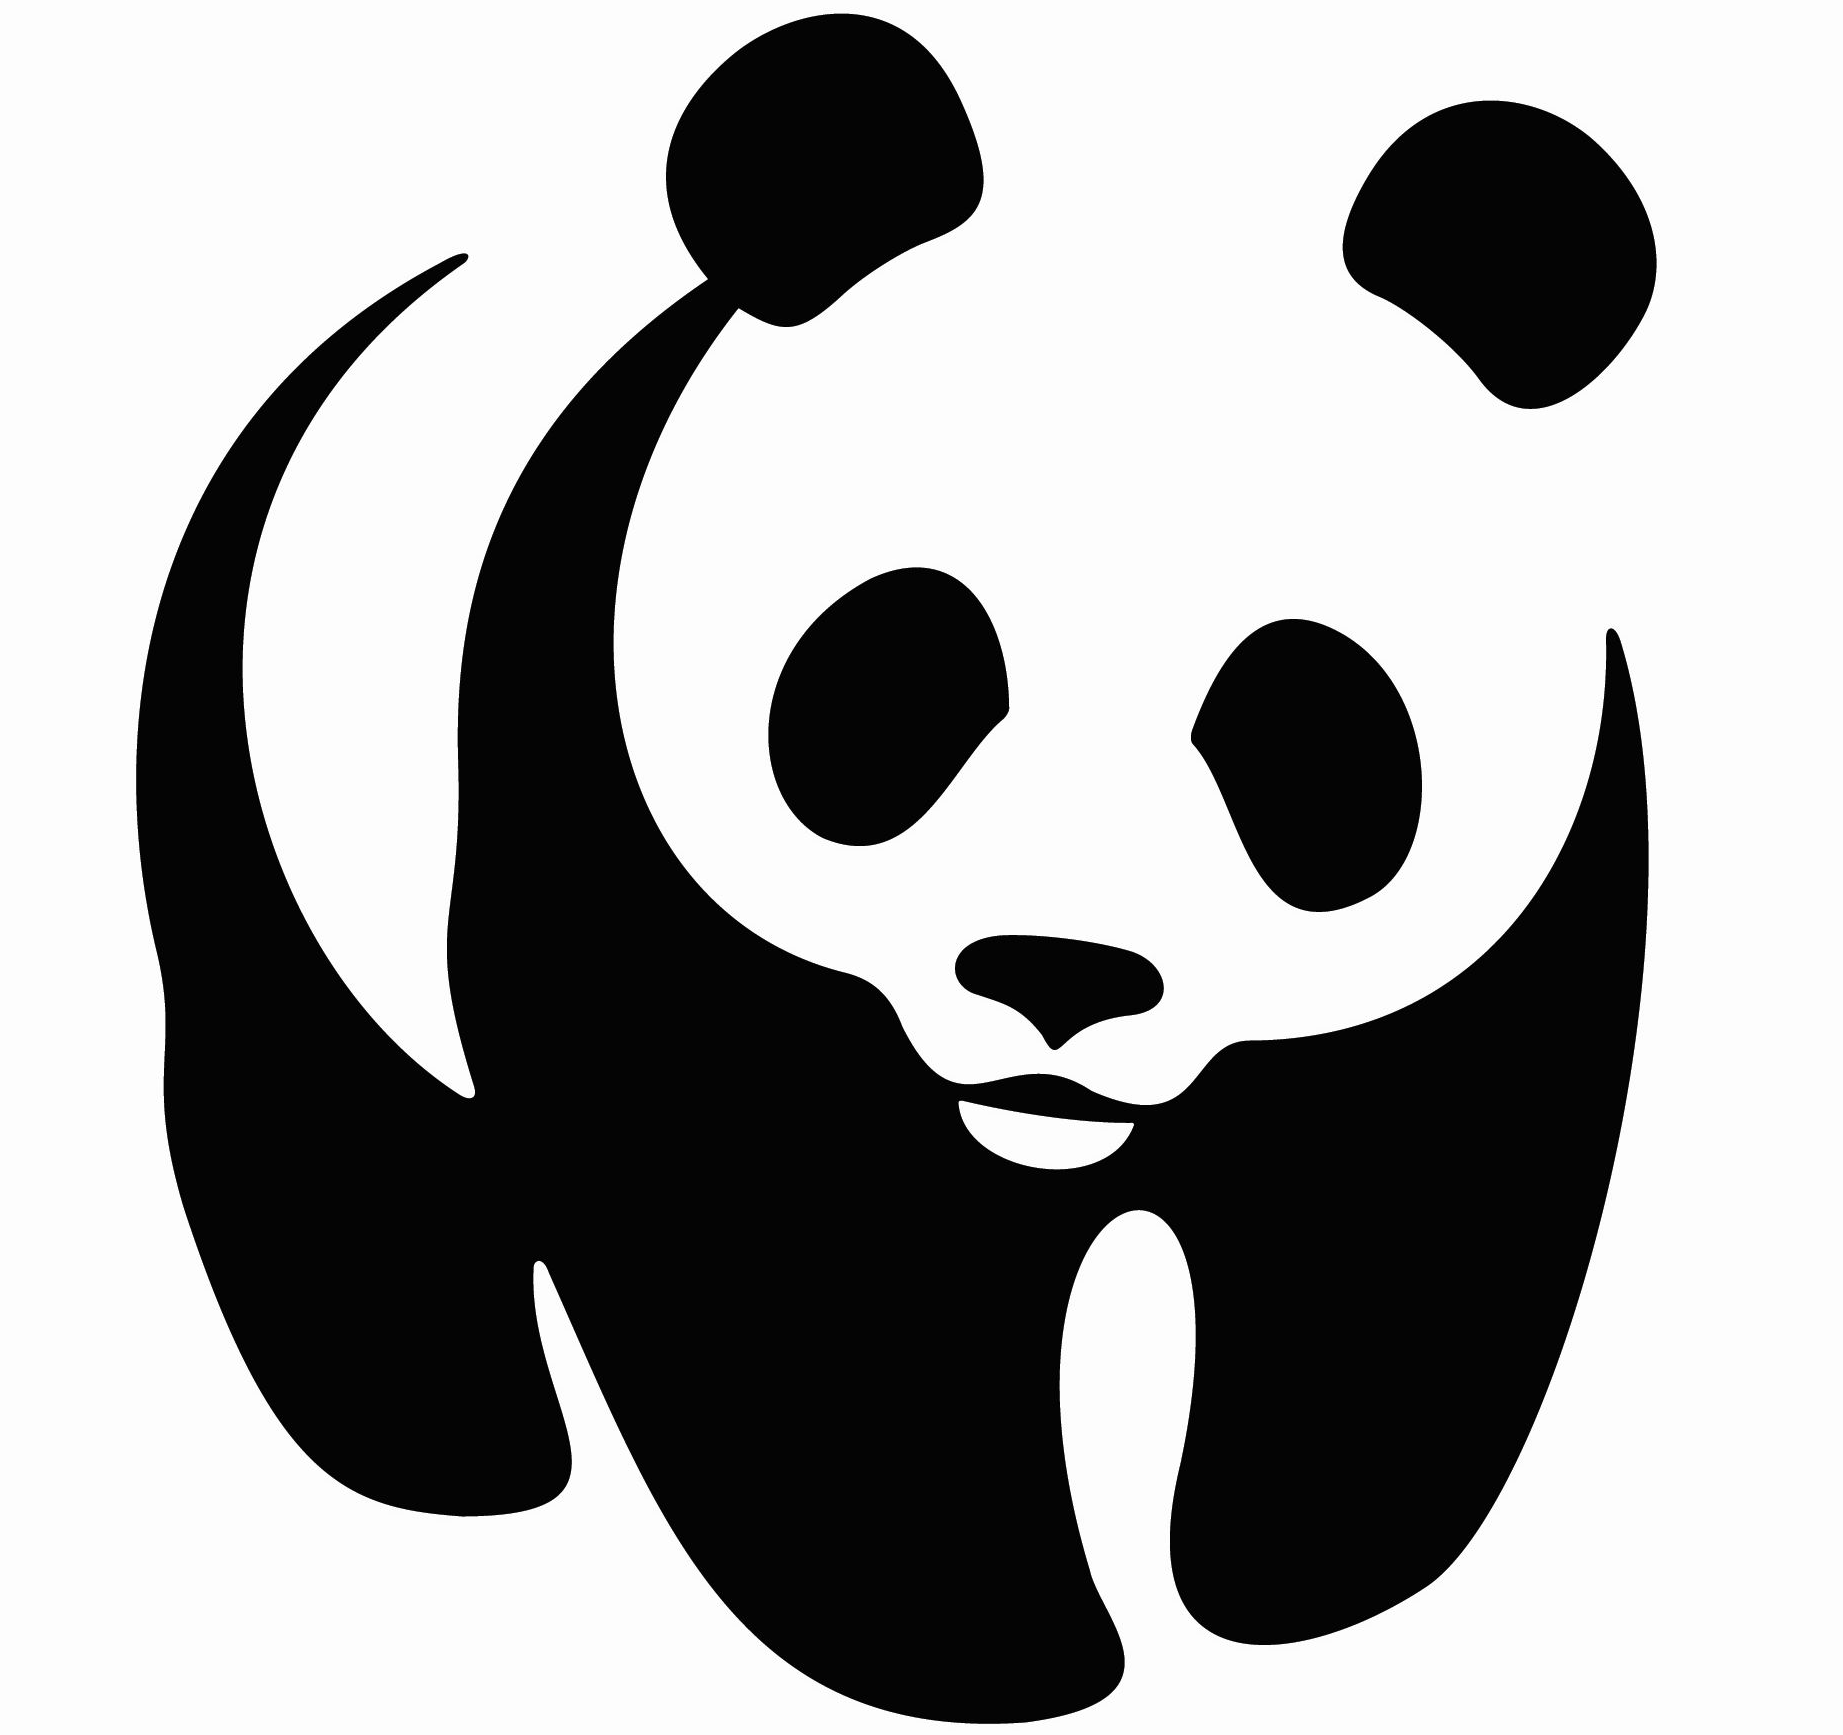 Apple partners with World Wildlife Fund on money.